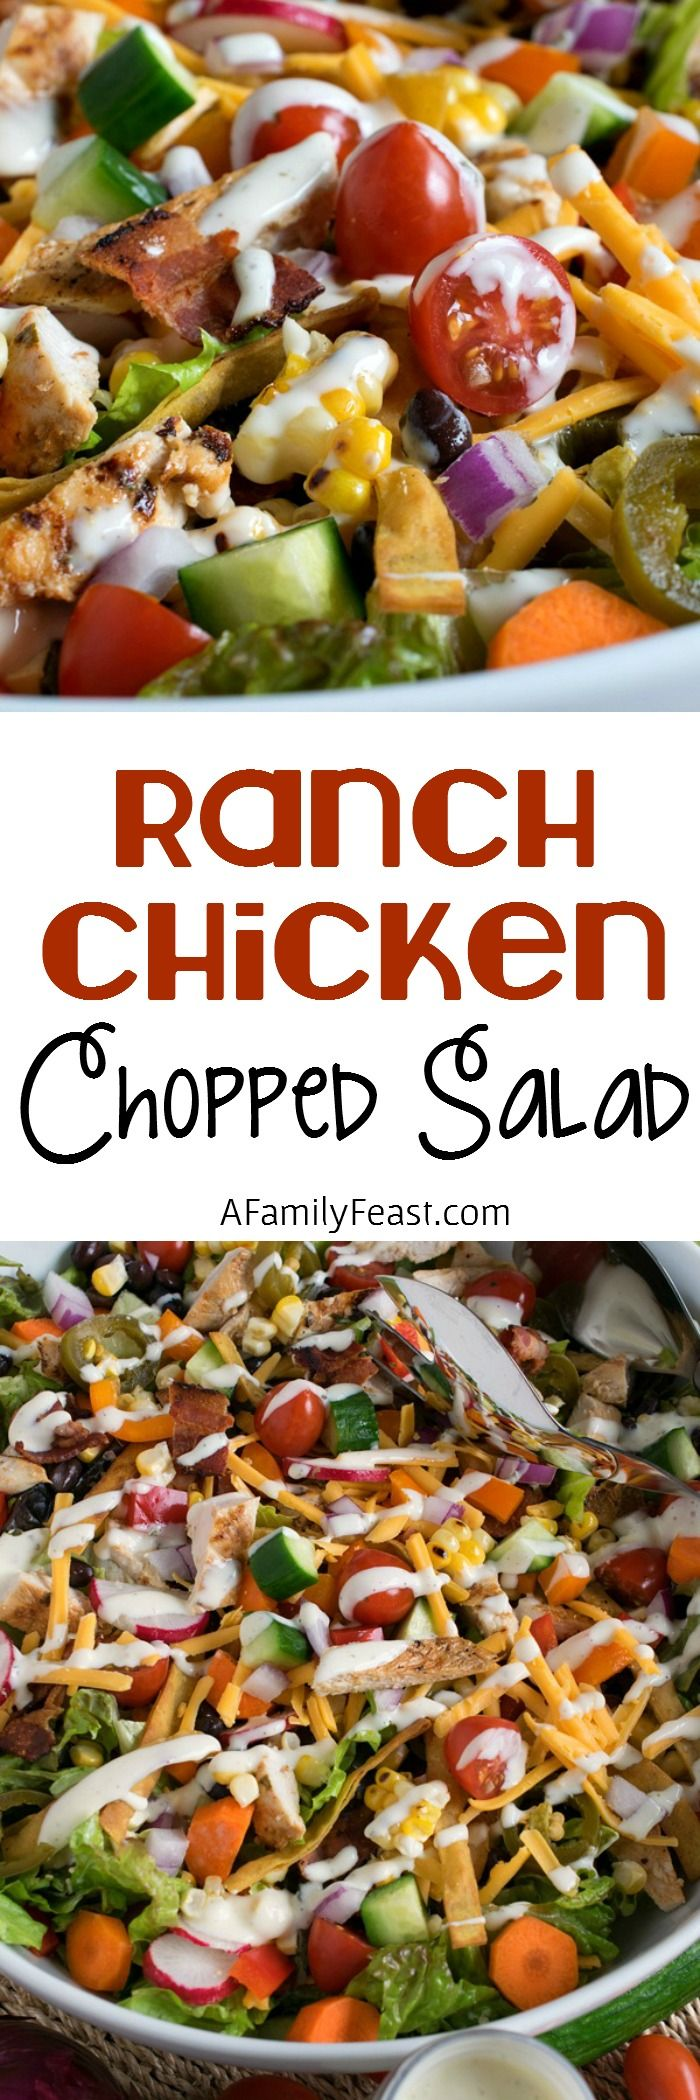 Ranch Chicken Chopped Salad - A Family Feast